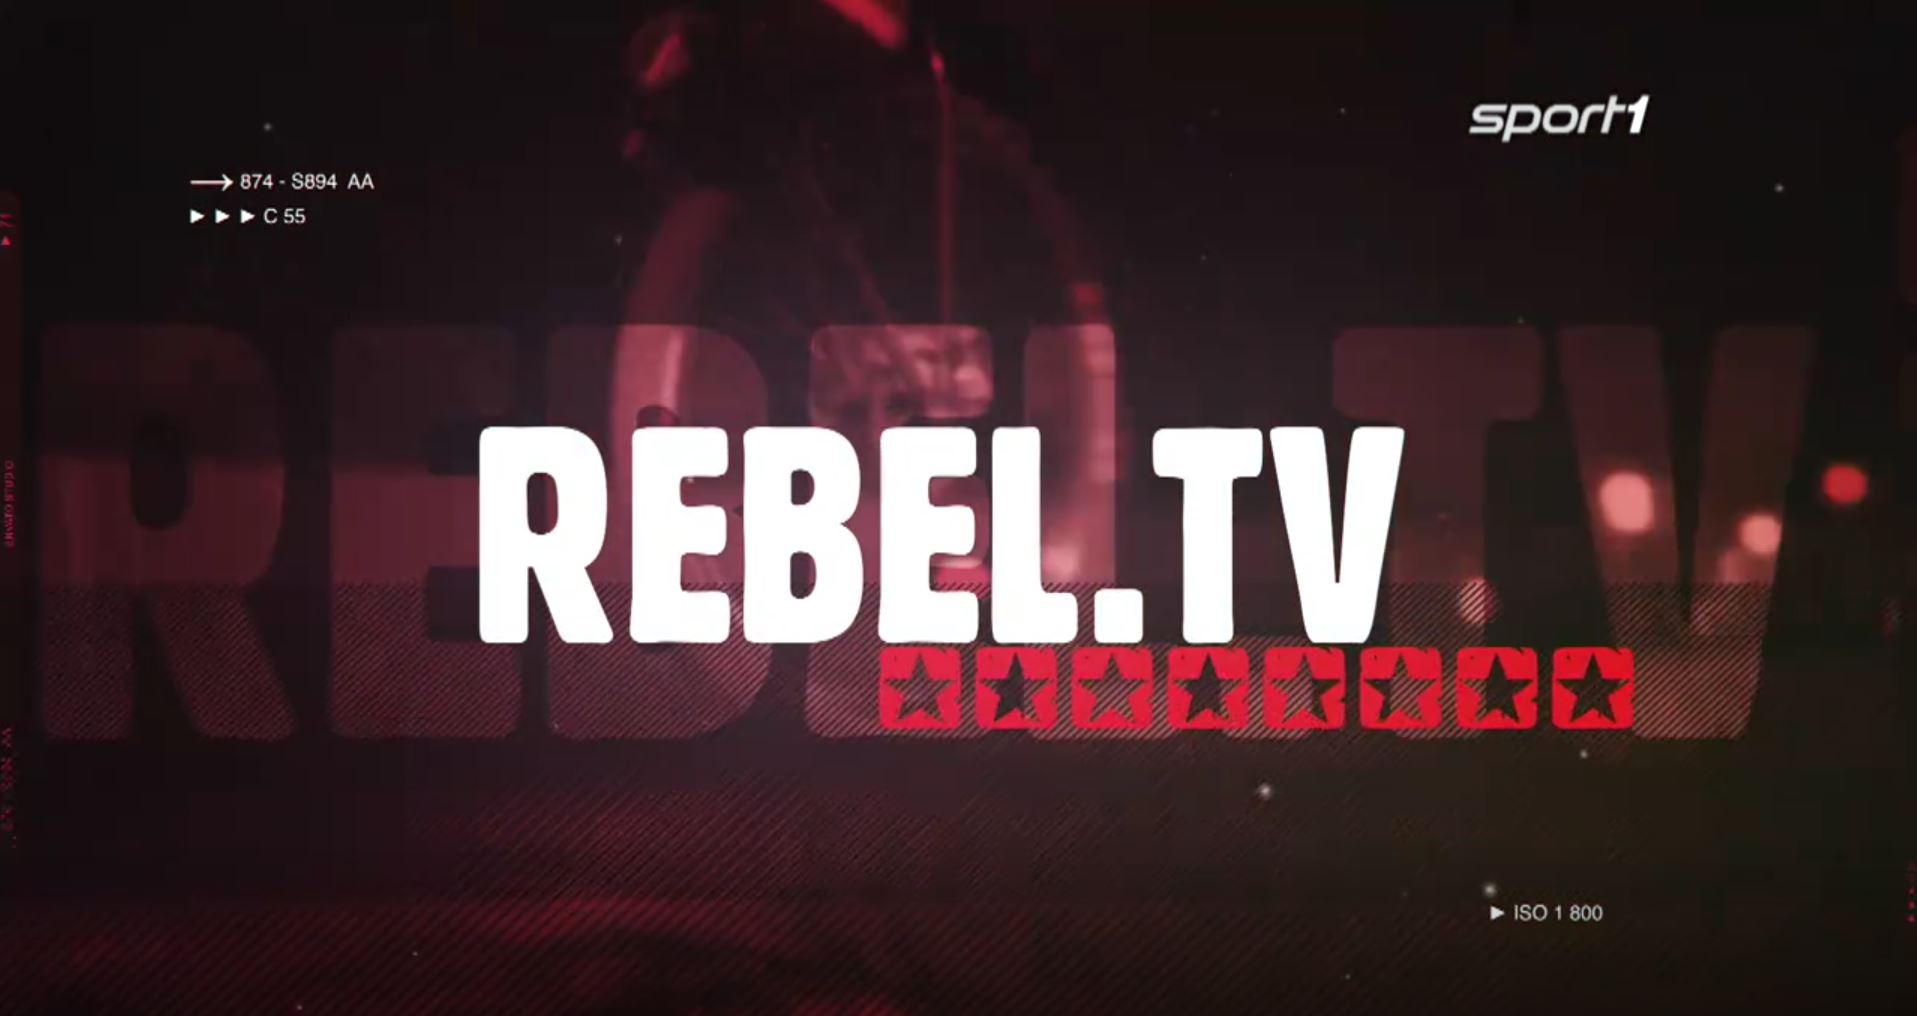 12. Oktober 2018 Rebel TV Episode 6 auf Sport 1